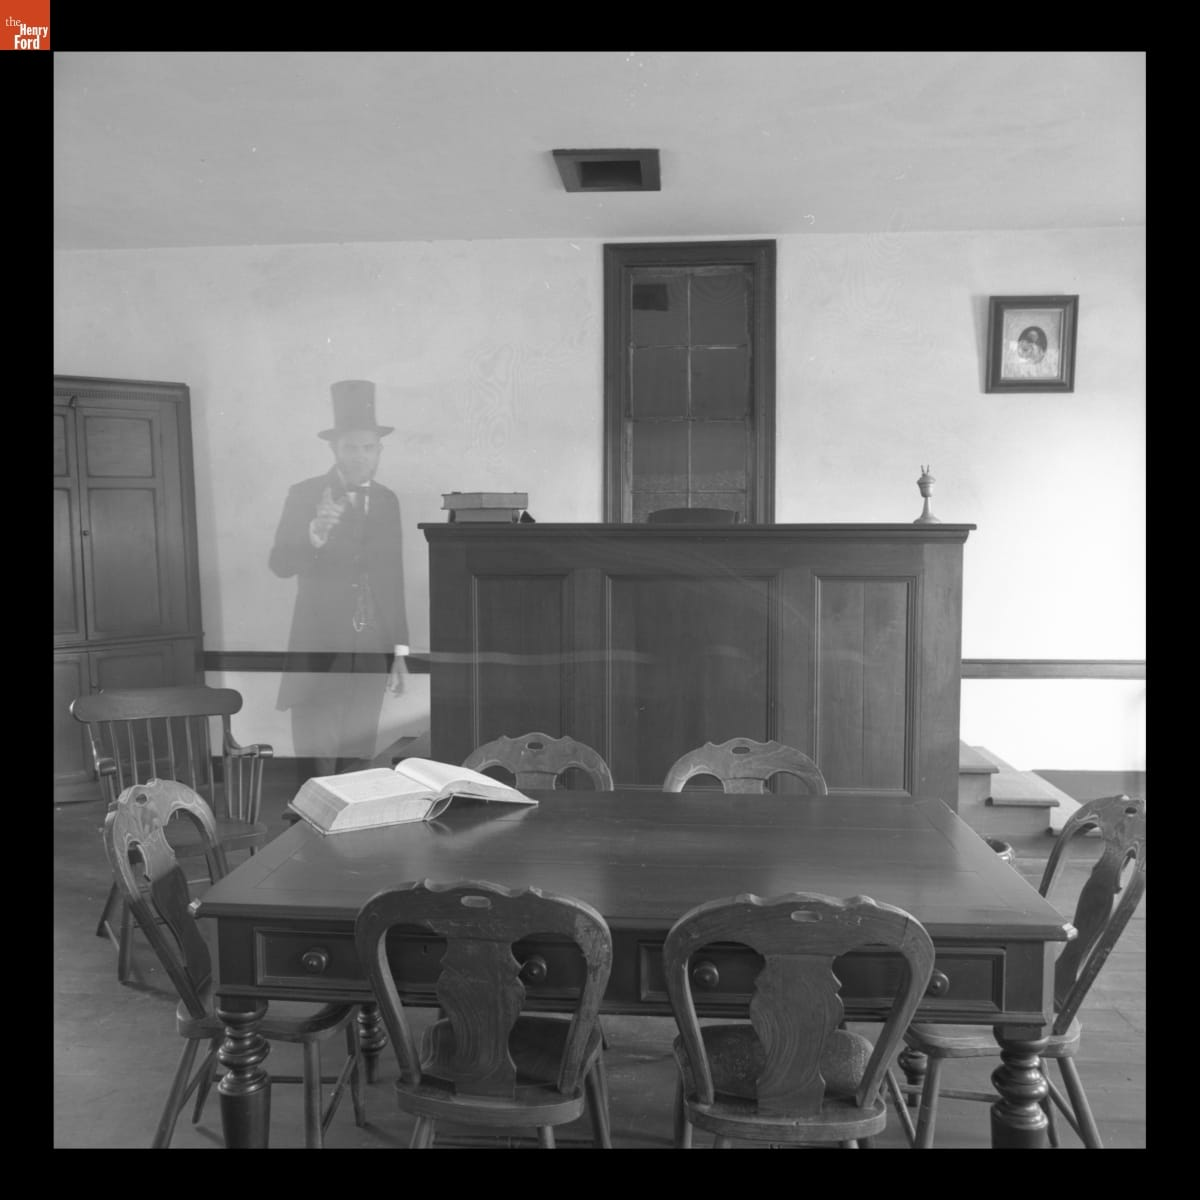 Transparent figure of Abraham Lincoln standing in room with table and dais